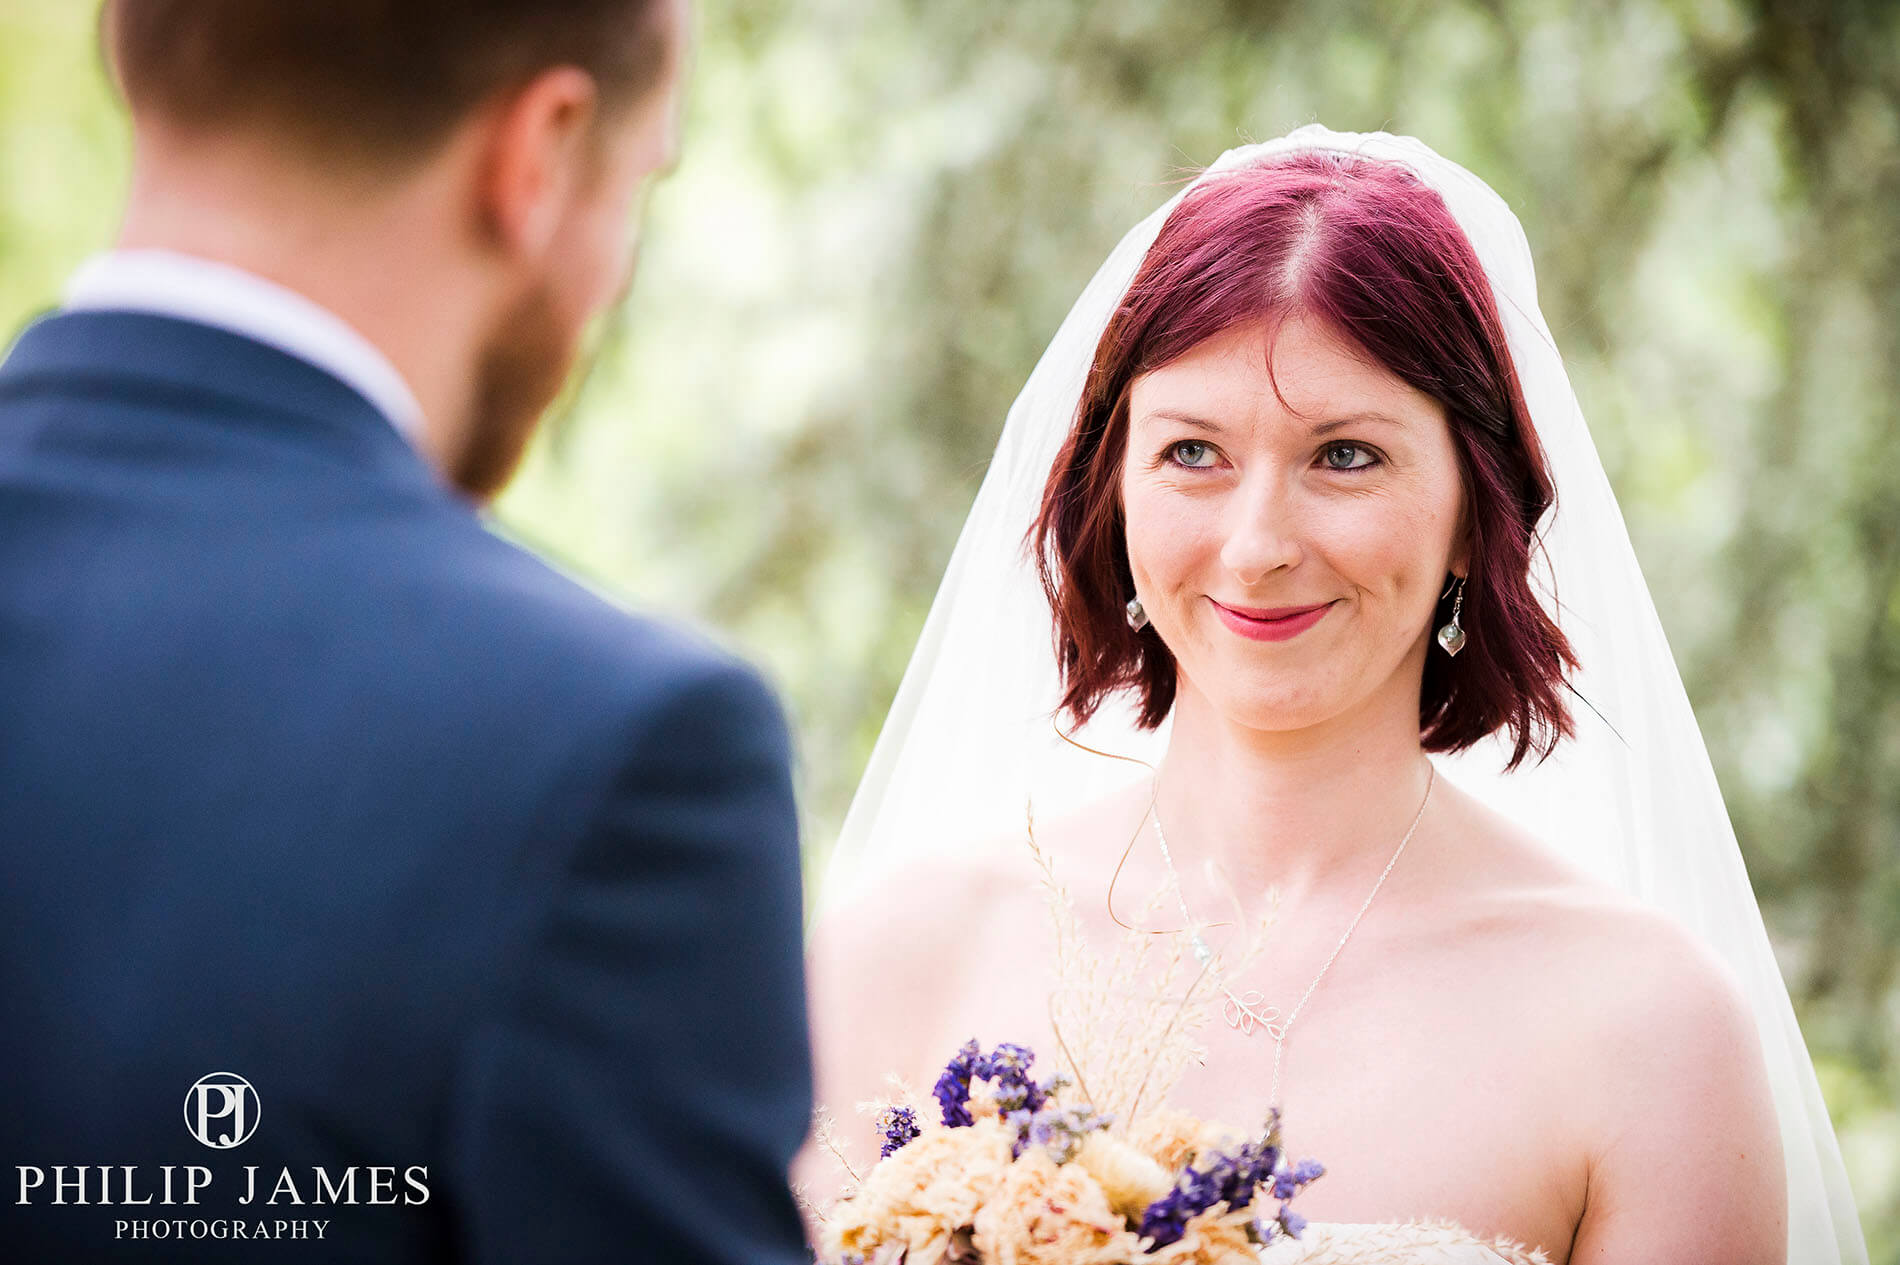 Philip James specializing in Wedding Photography Birmingham - Moments (37 of 170)